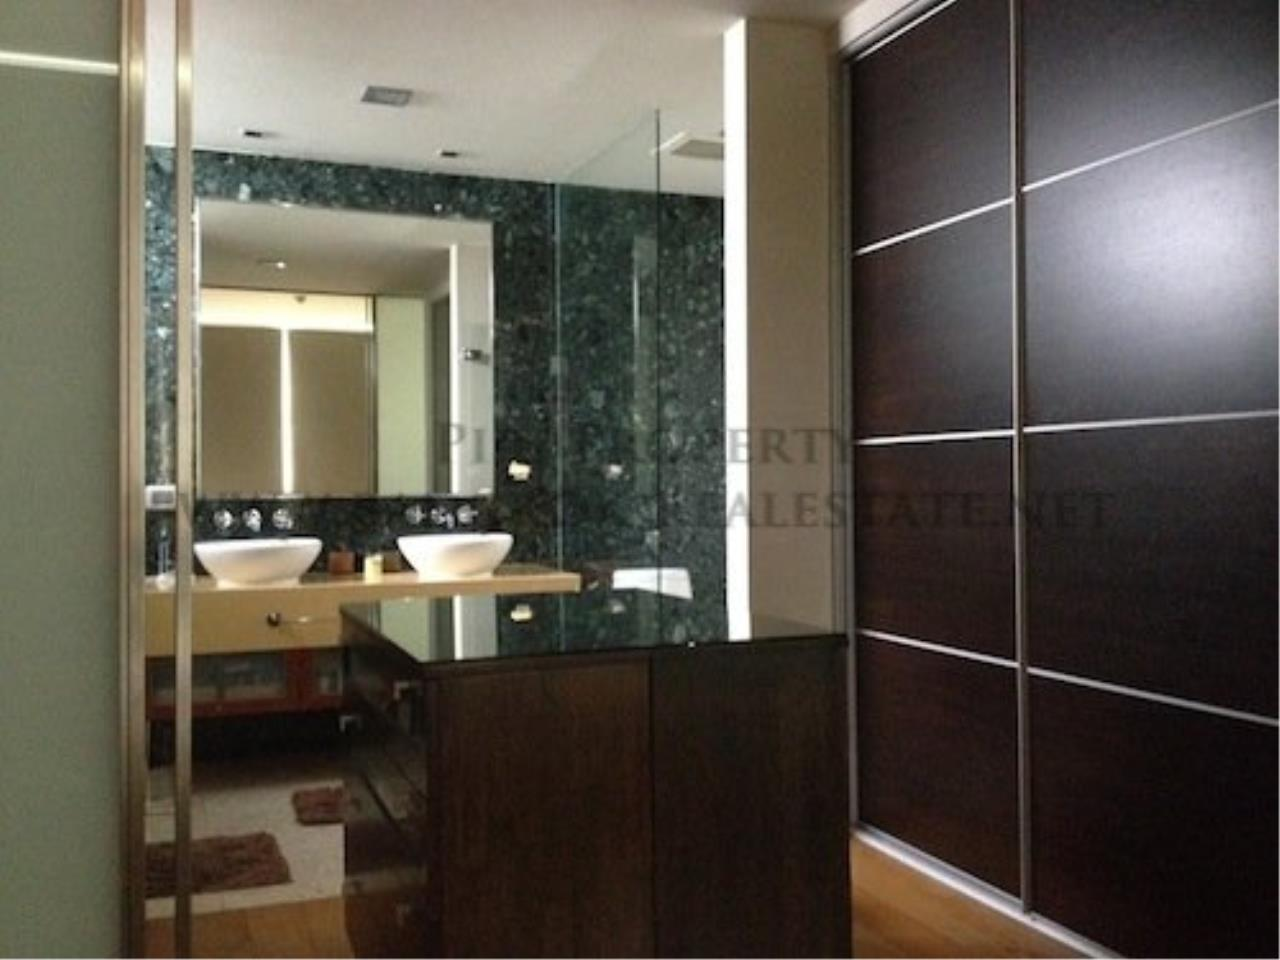 Piri Property Agency's Ficus Lane Condo - Nice 3 Bedroom Condo with 200 SQM in the Green 5